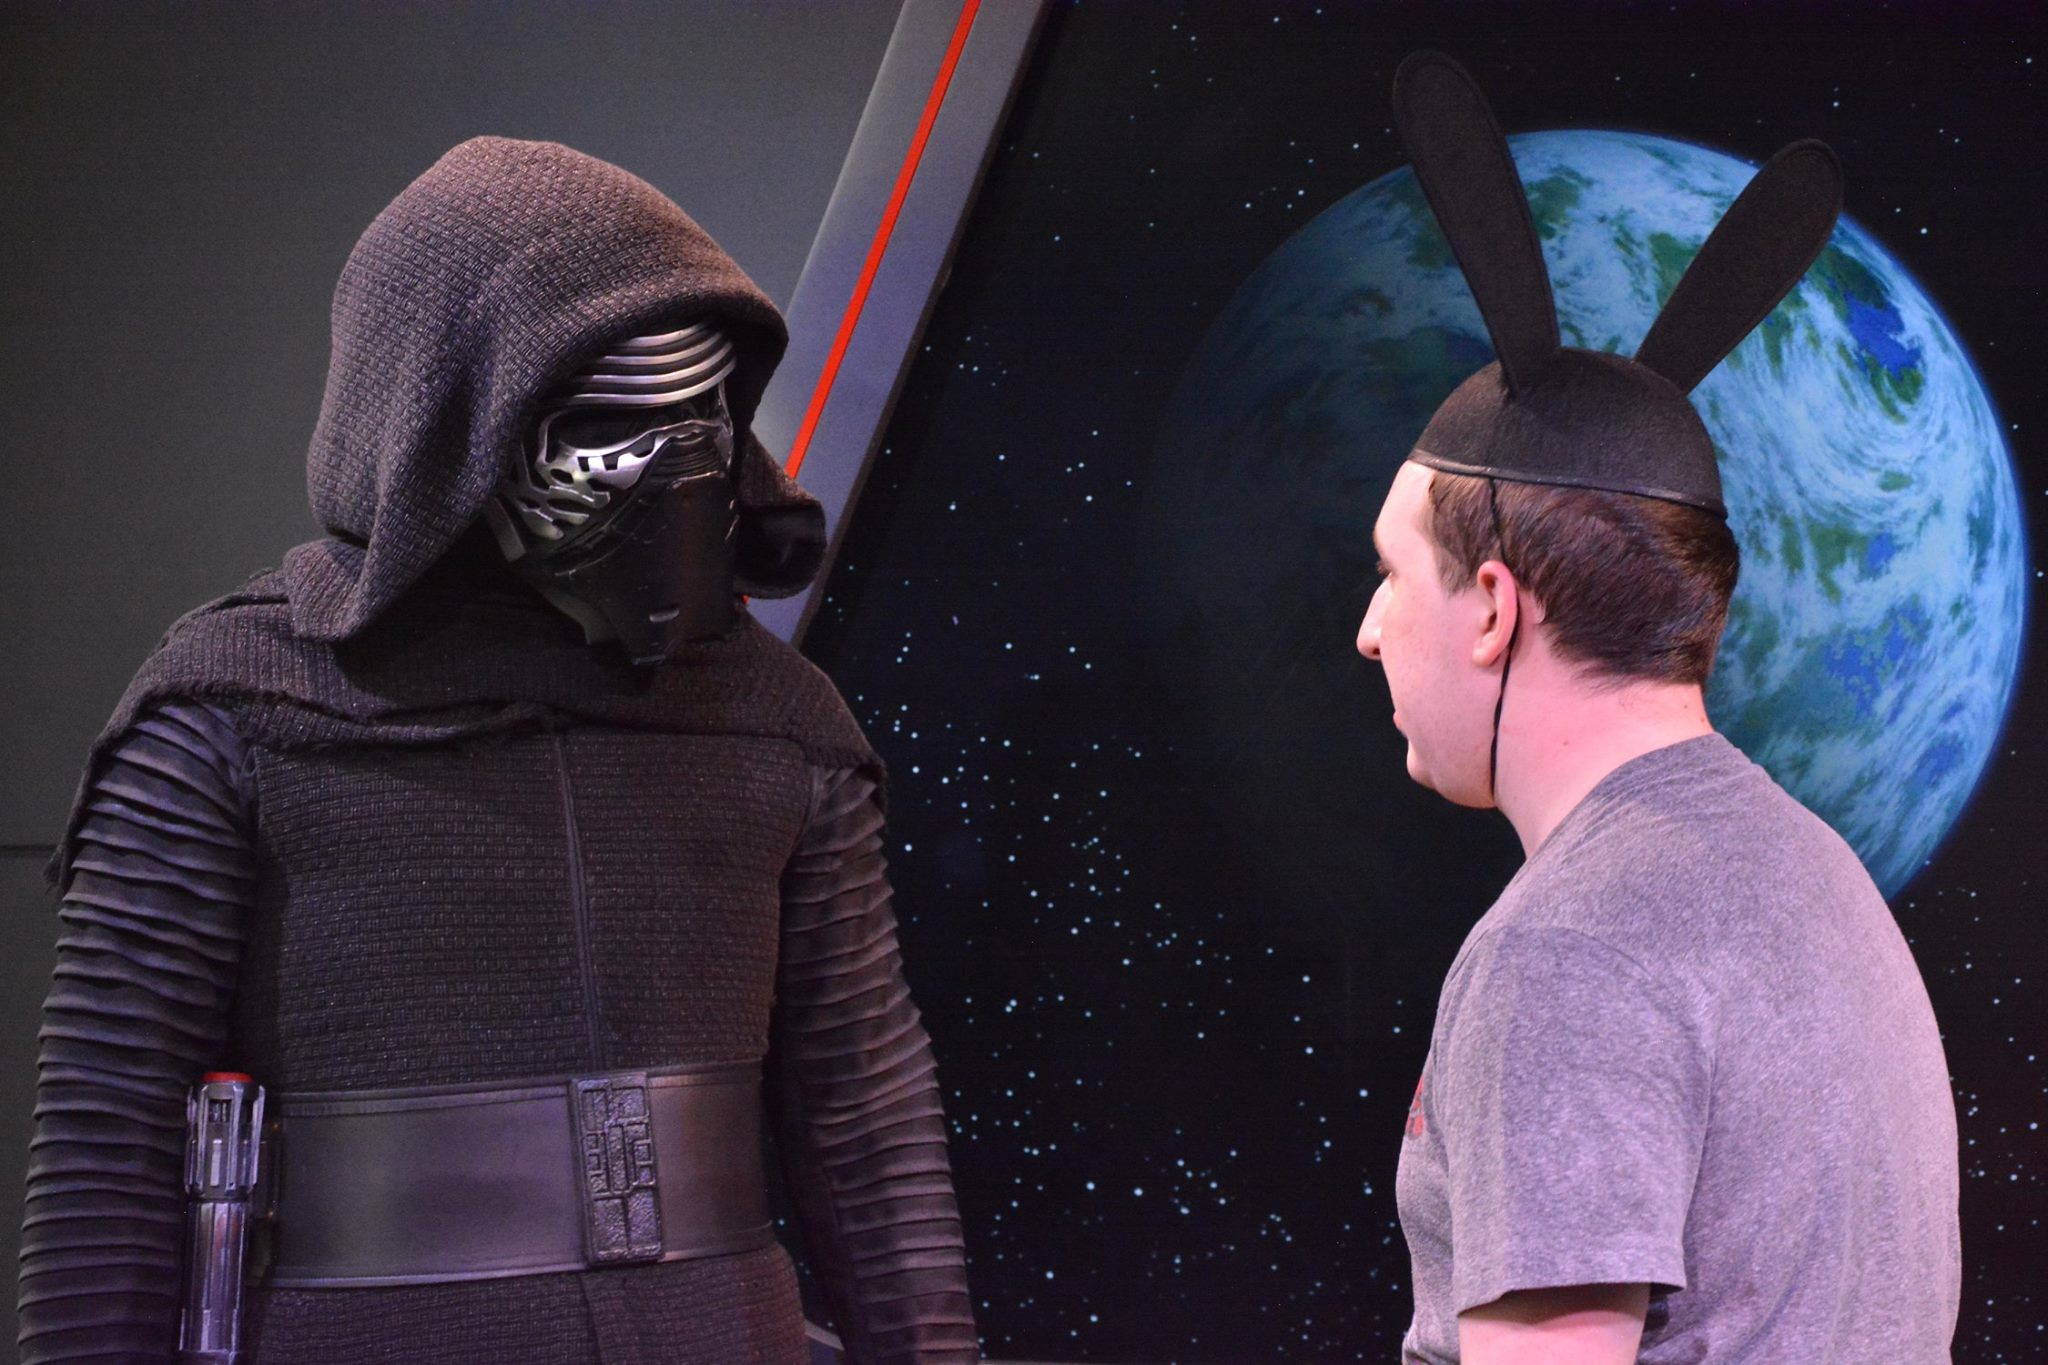 Meeting Kylo Ren(1/2)